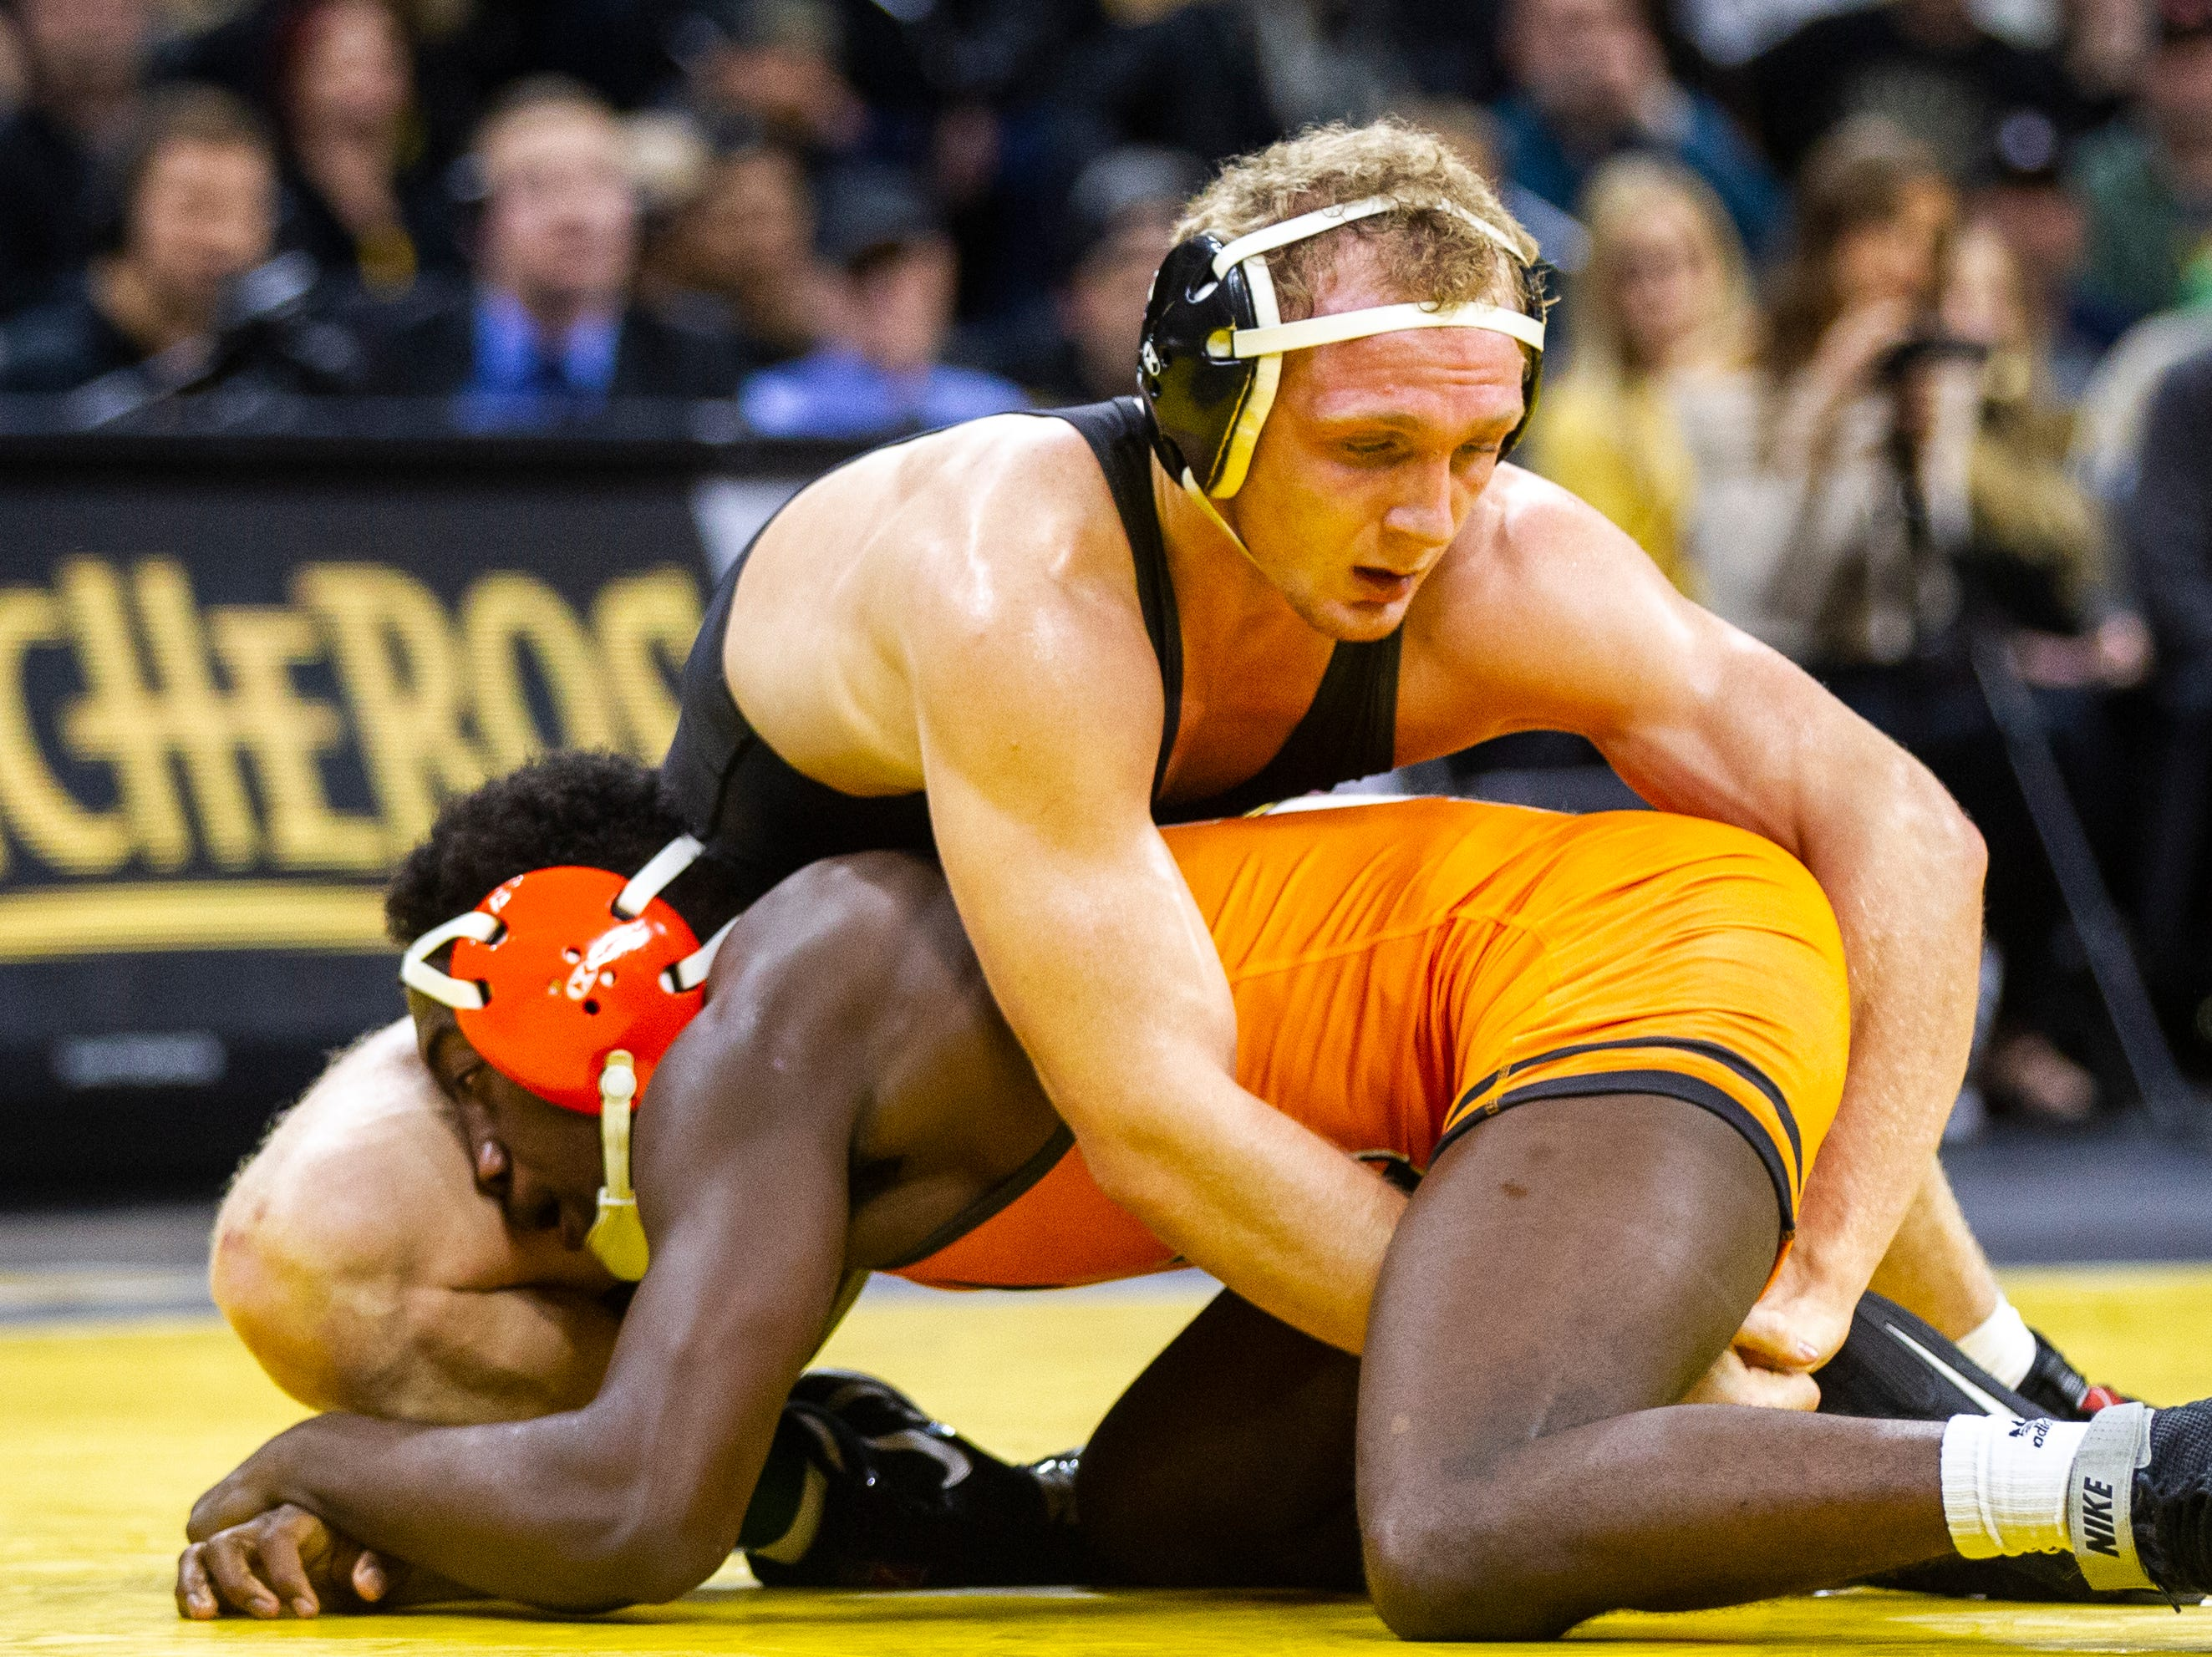 Iowa's Kaleb Young (top) wrestles Princeton's Quincy Monday at 157 during an NCAA wrestle dual on Friday, Nov. 16, 2018, at Carver-Hawkeye Arena in Iowa City.